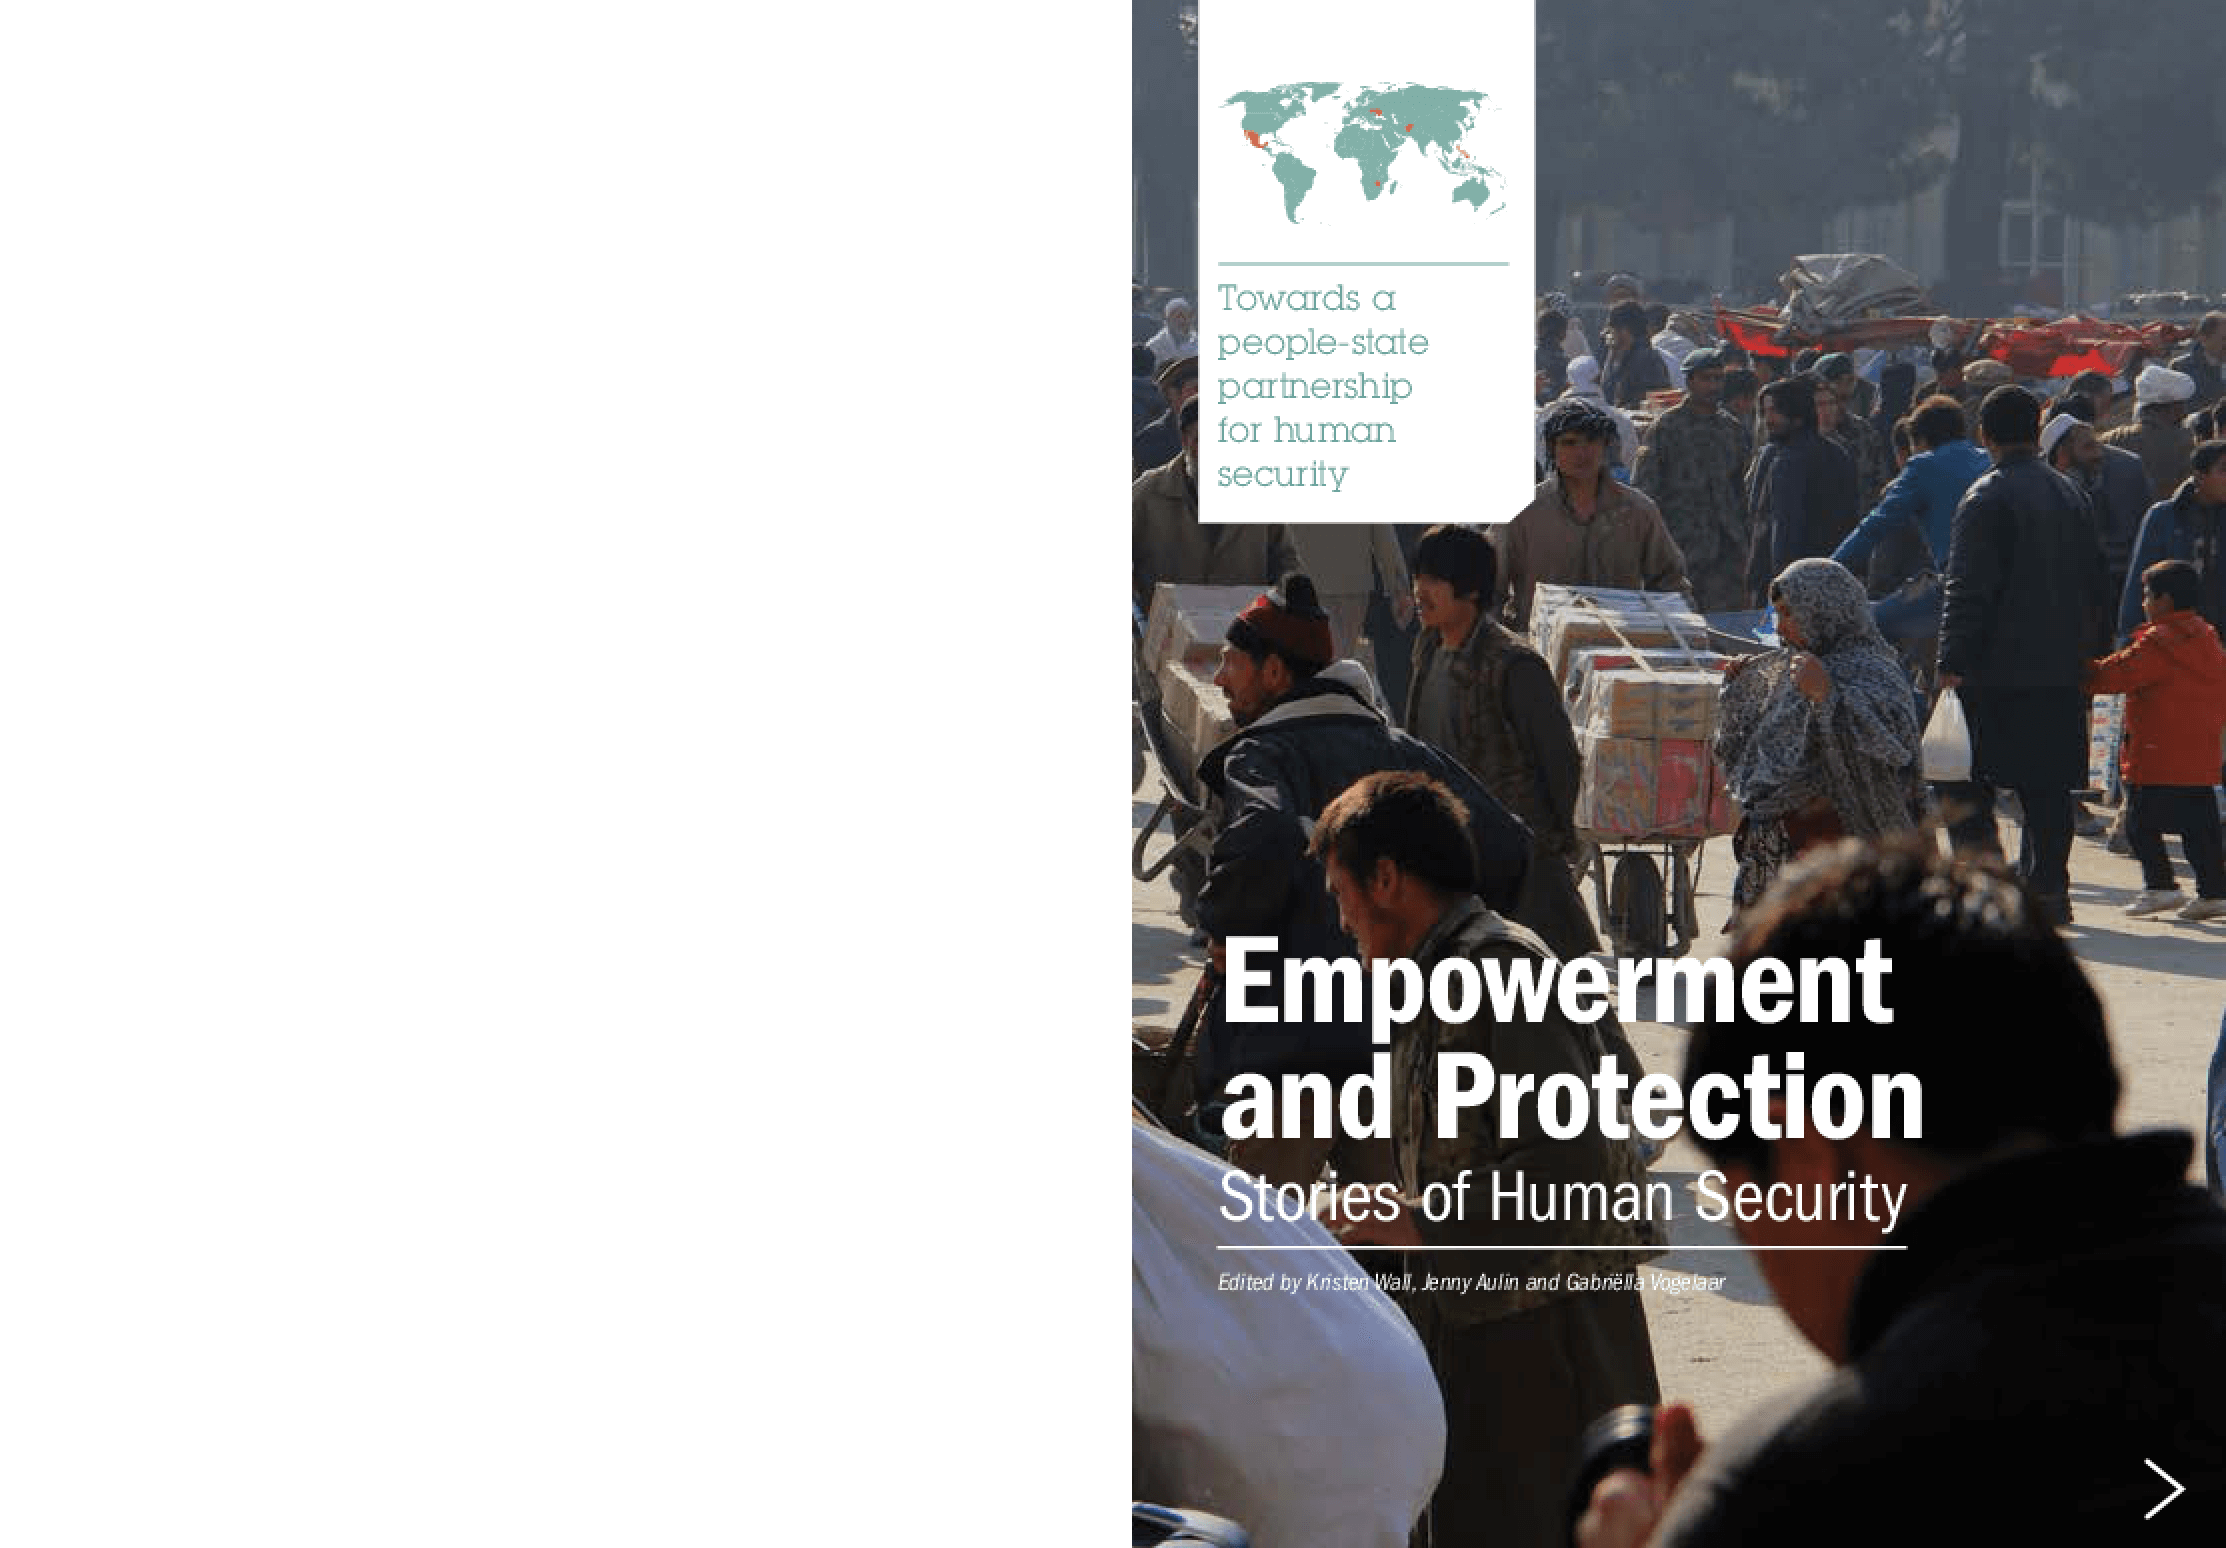 Empowerment and Protection: Stories of Human Security